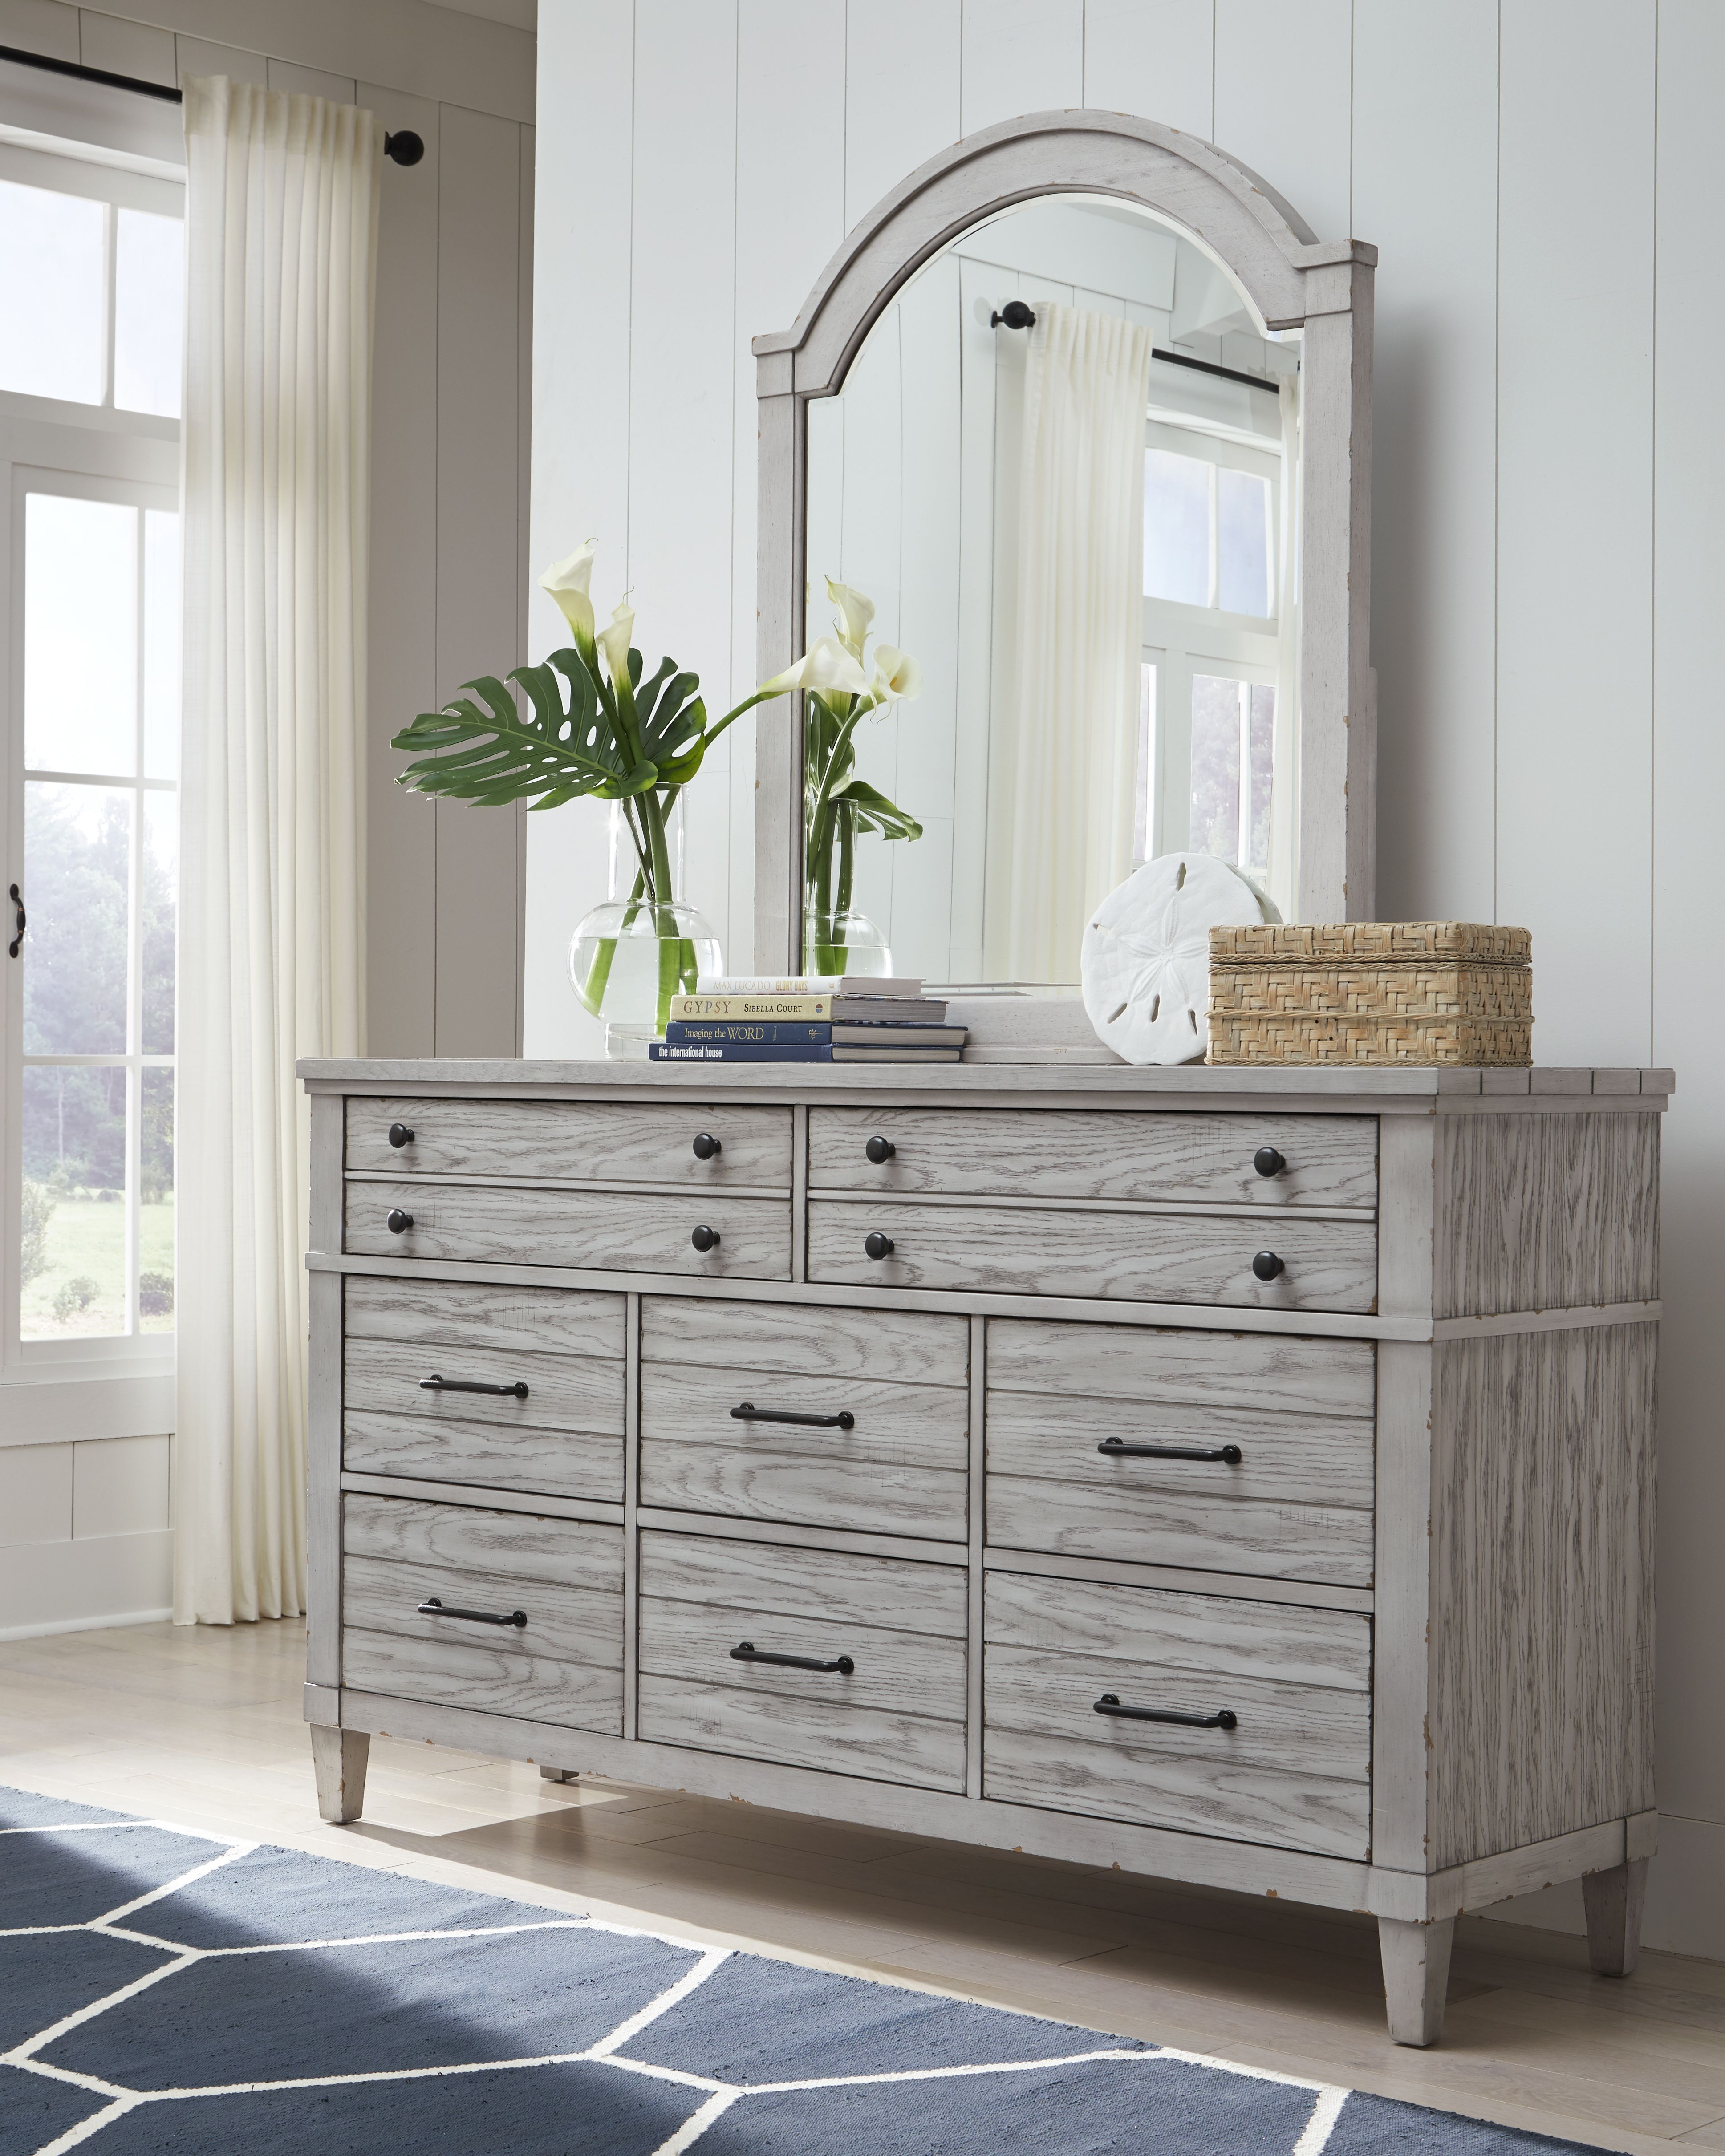 Belhaven Dresser Weathered White Legacy Classic Furniture Belhaven Legacyclassic Coa Legacy Classic Furniture Dresser With Mirror Rectangle Dining Table [ 4844 x 3875 Pixel ]